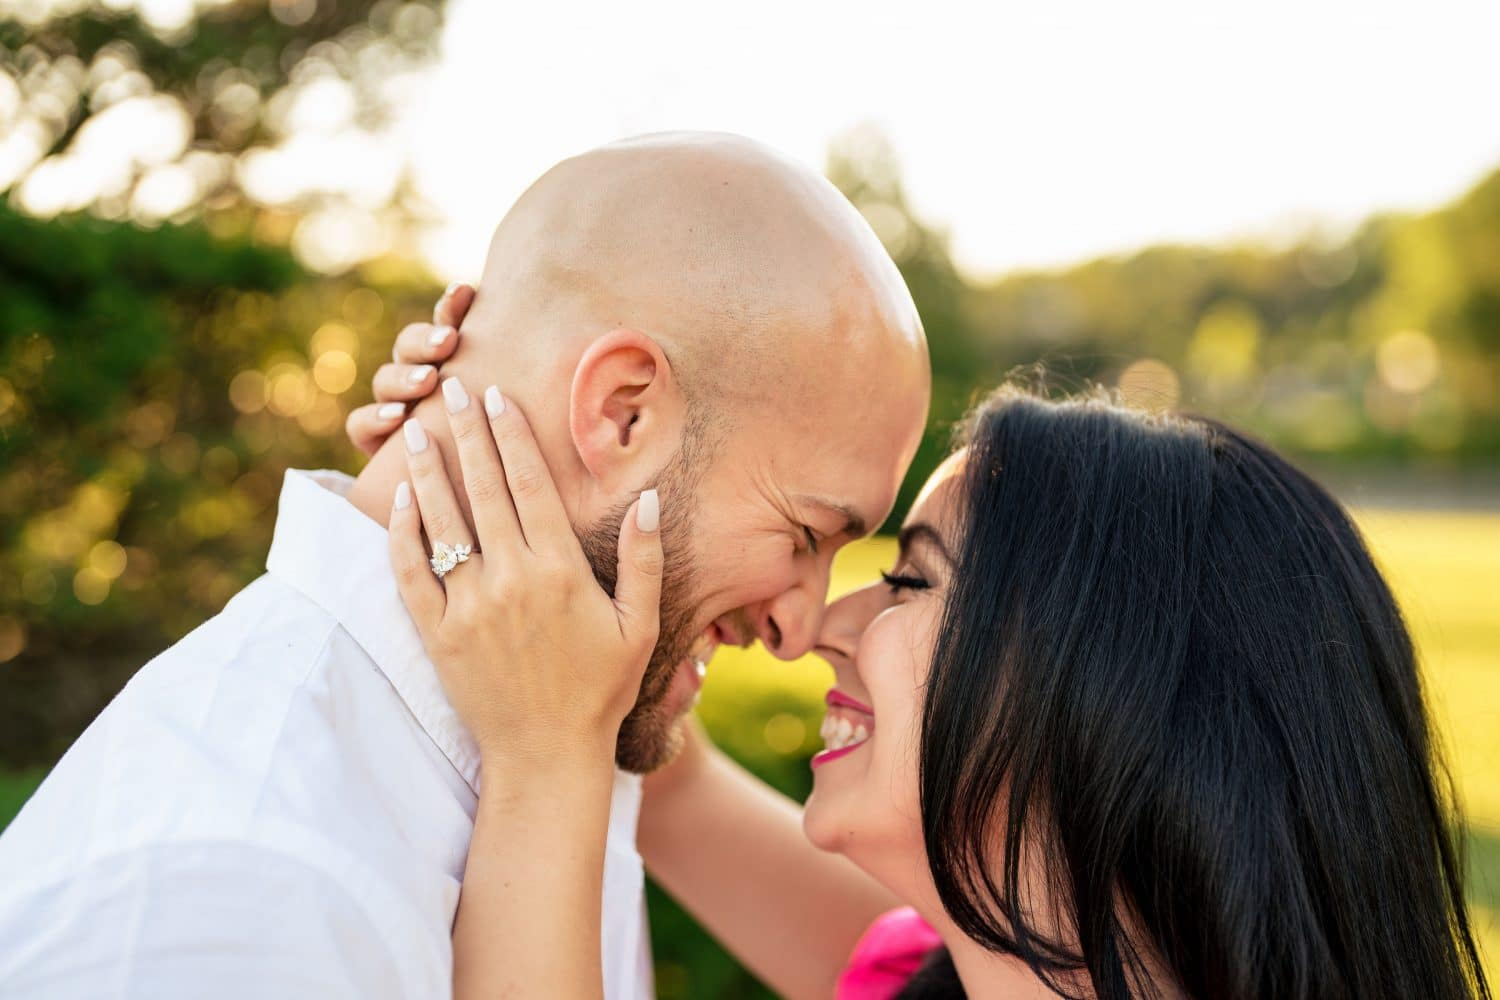 couple heads together smiling engagement